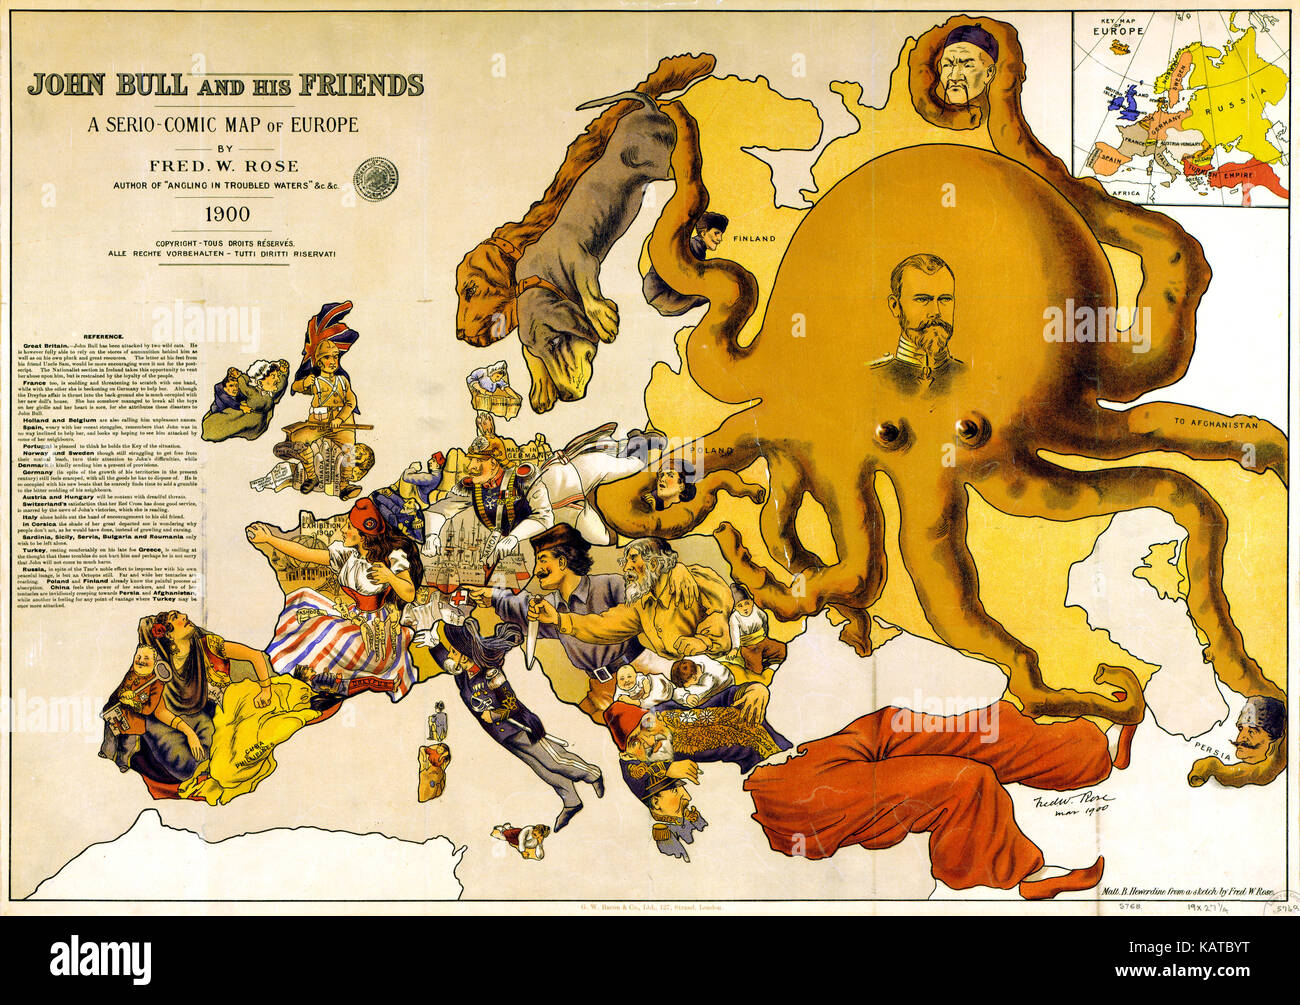 JOHN BULL AND HIS FRIENDS  A 1900 satirical map of Europe by British cartoonist and civil servant Frederick W. Rose - Stock Image